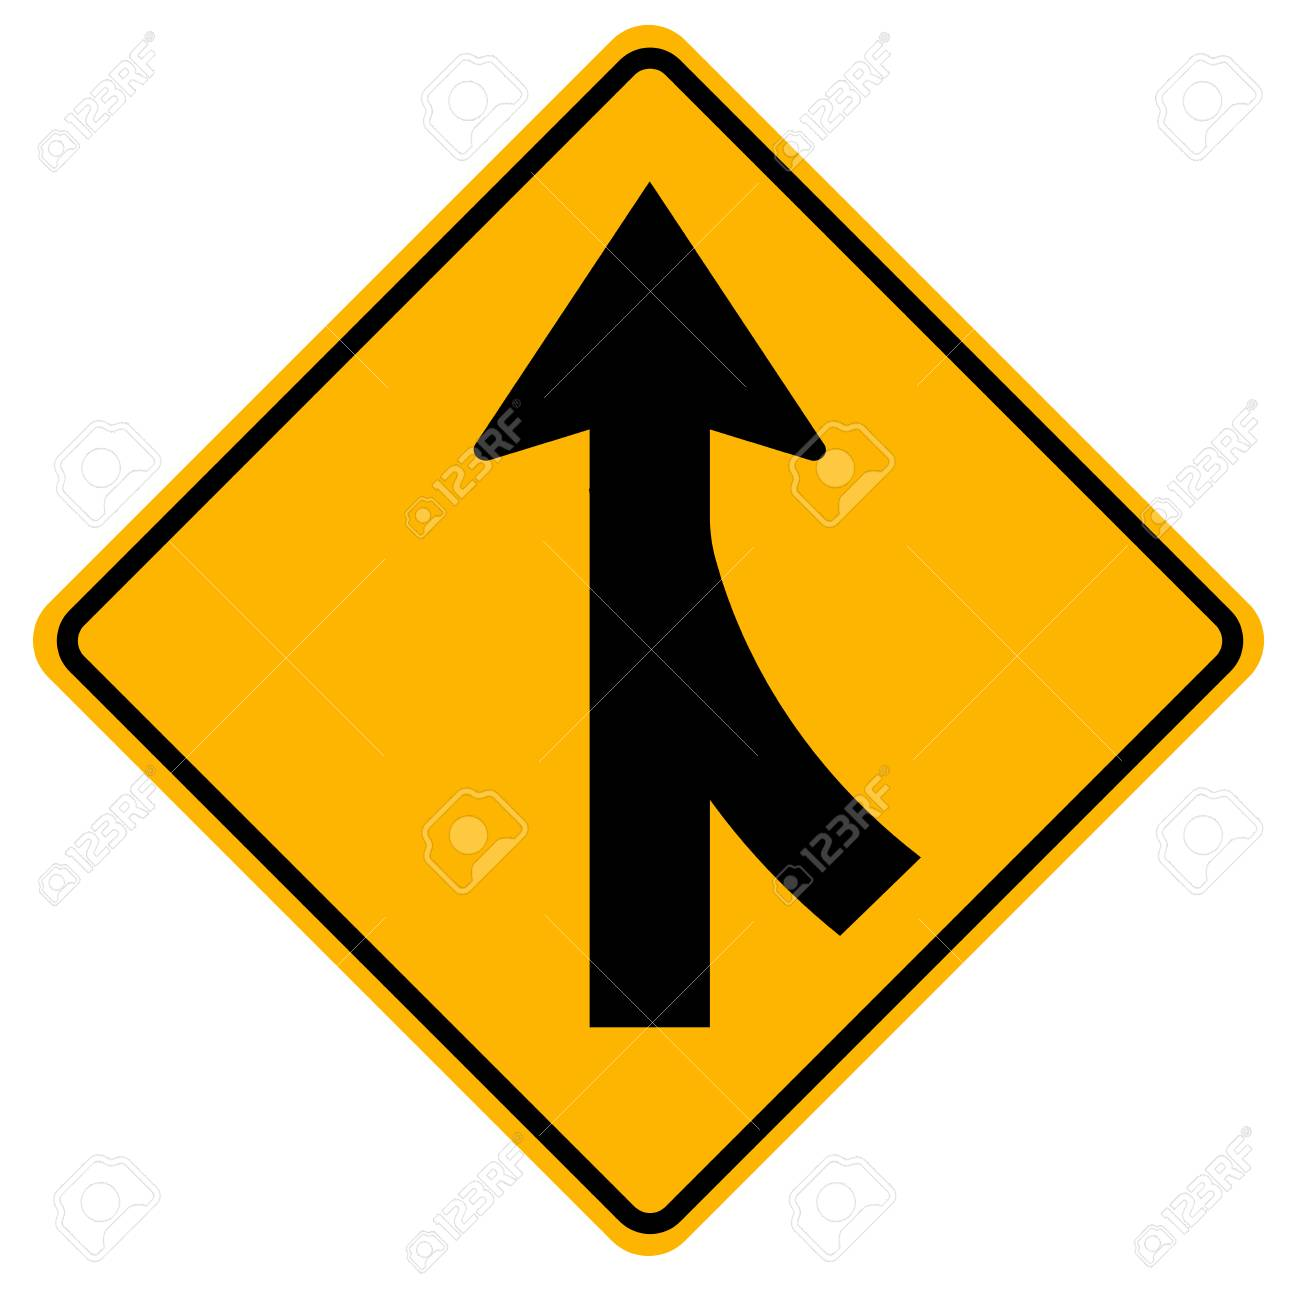 Merges Right Traffic Road Sign,Vector Illustration, Isolate On White Background, Symbols, Icon. EPS10 - 121275127